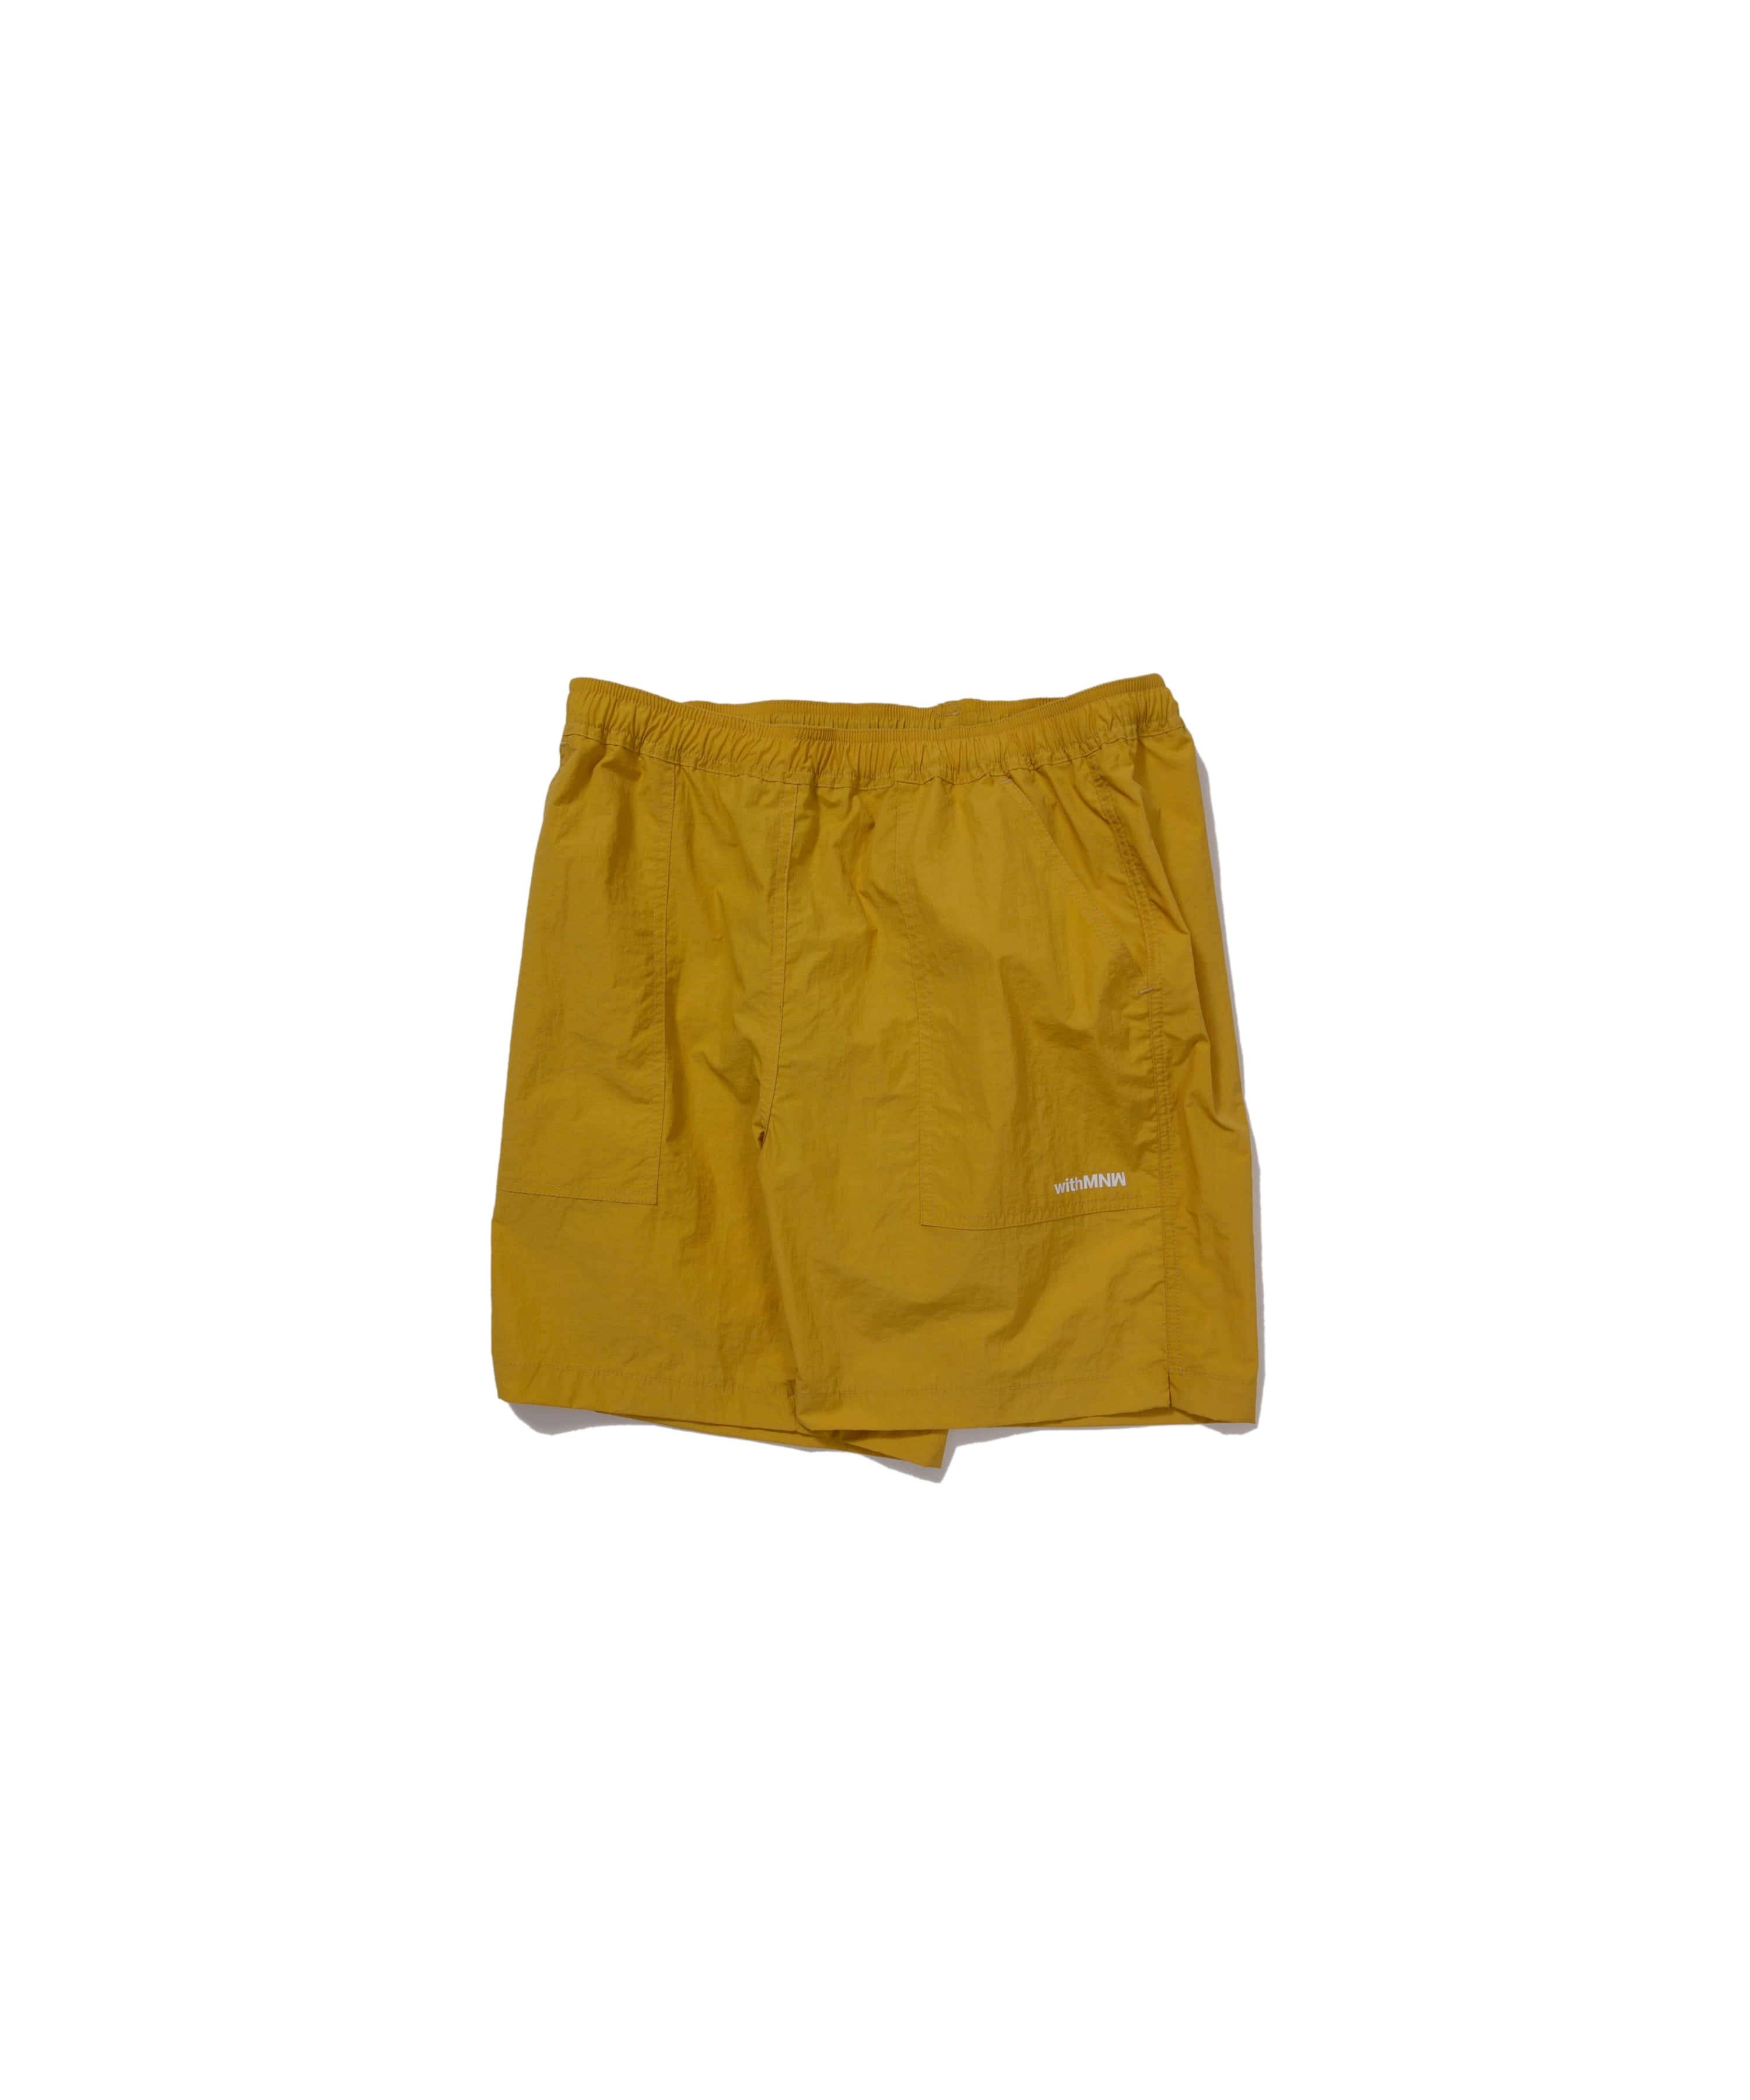 [50%] FATIGUE EASY SHORTS MUSTARD